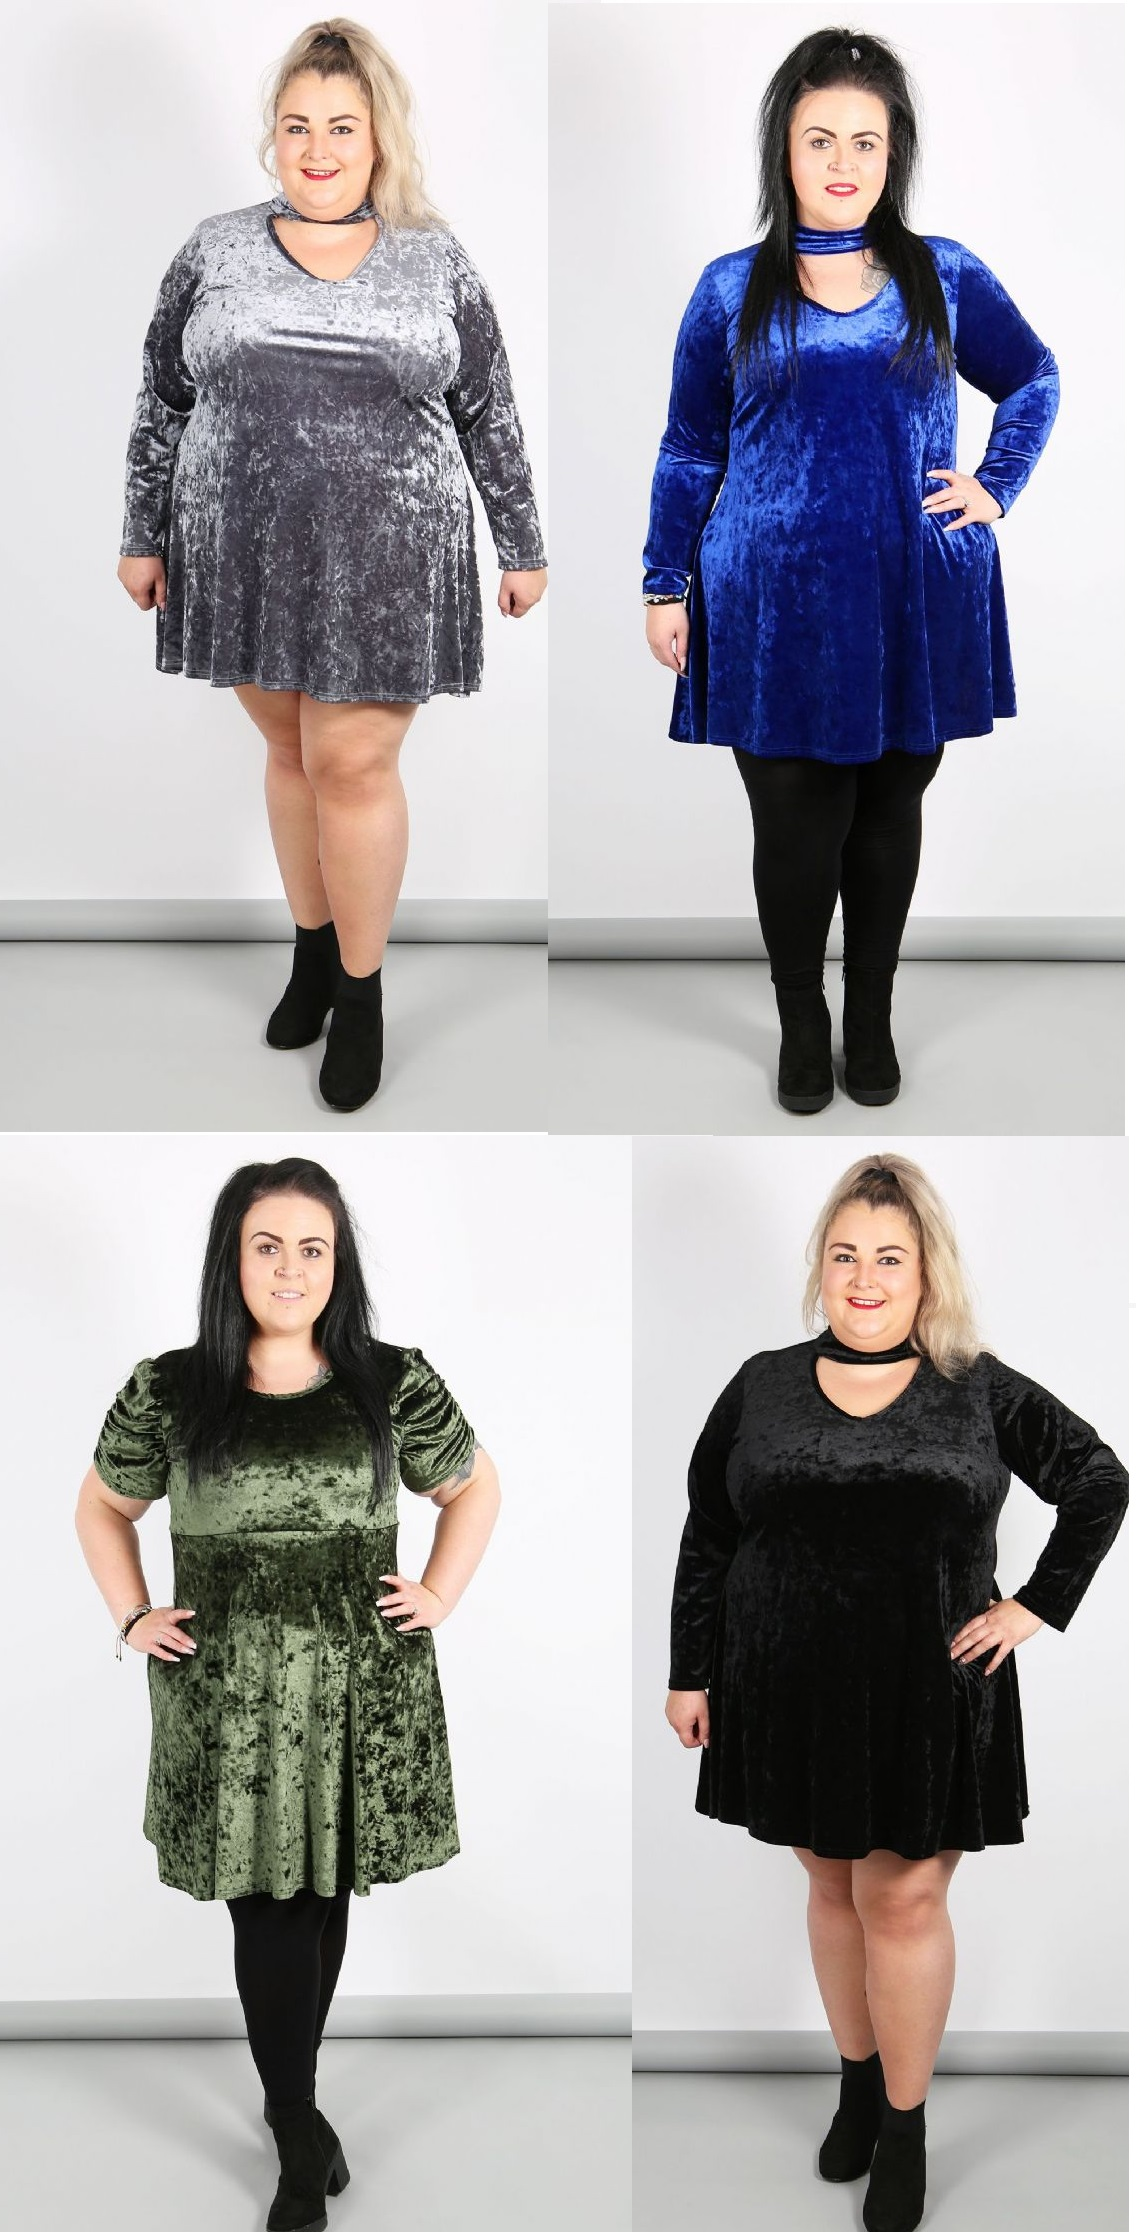 Why I Love Brands Like Topsy Curvy